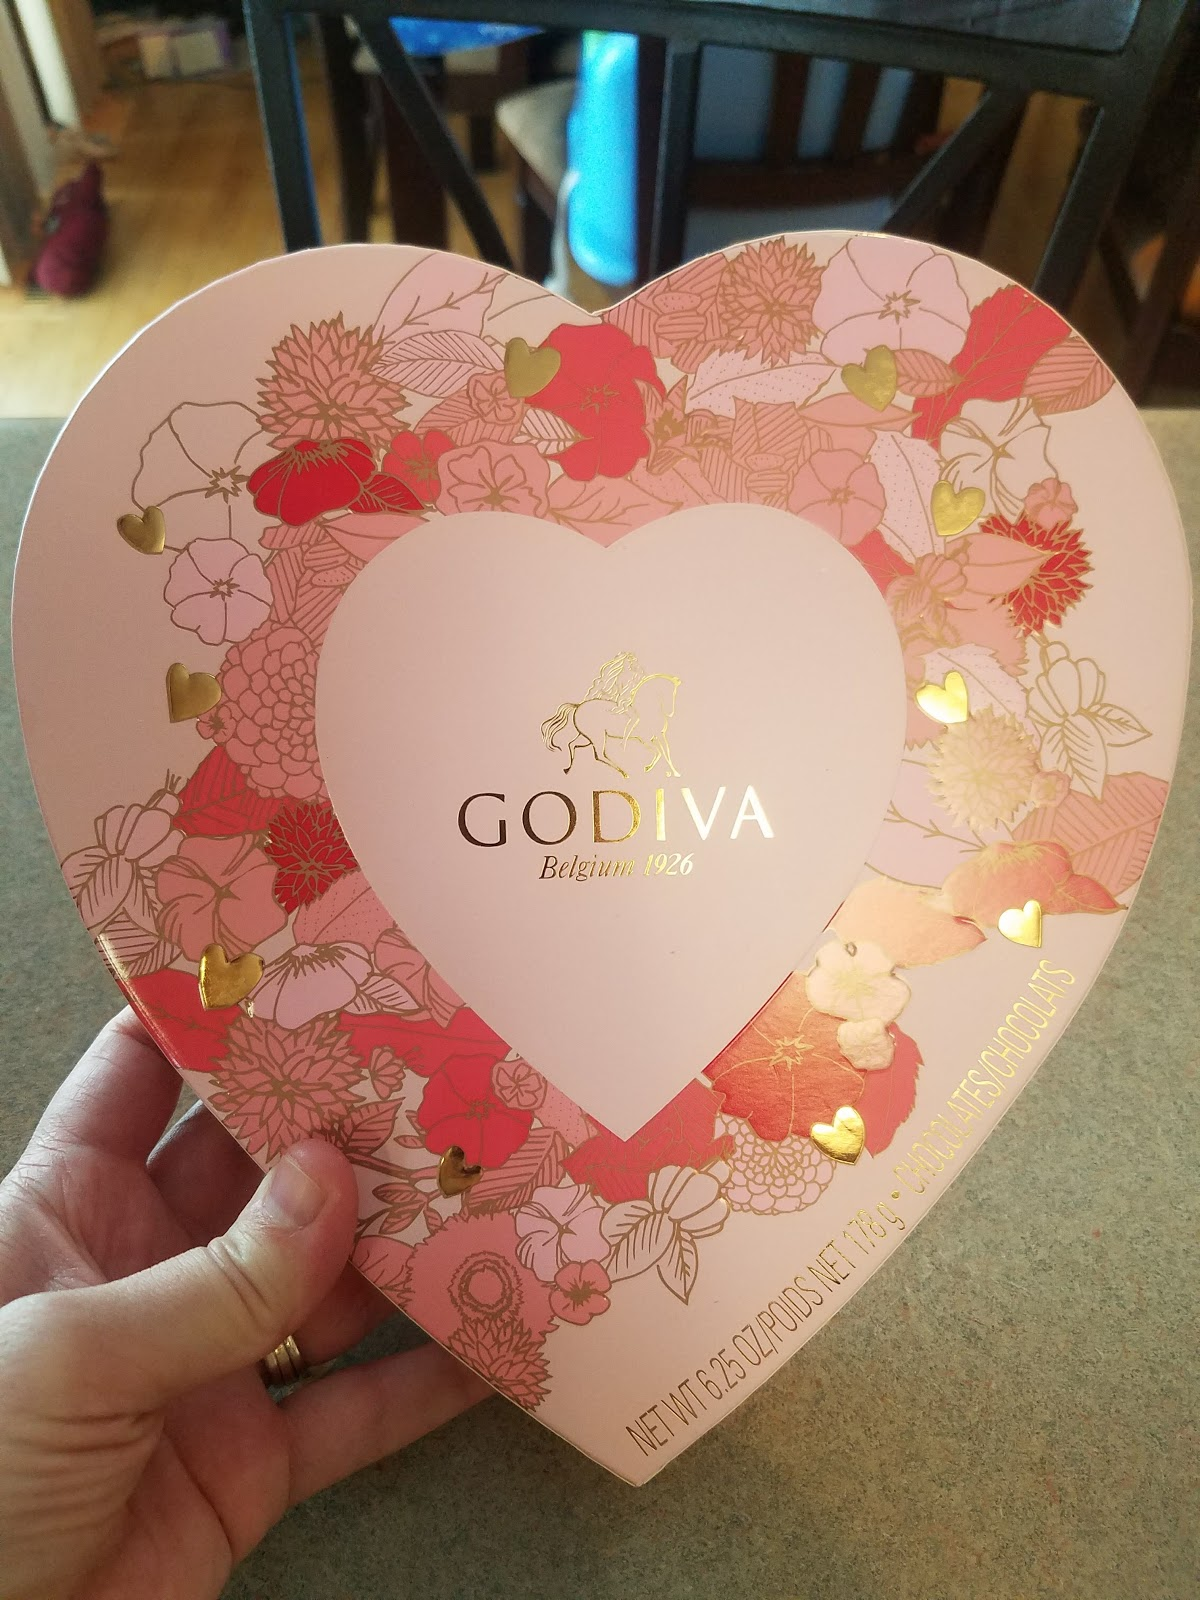 The Review Stew Show Your Love This Valentine S Day With Godiva Chocolate Gifts